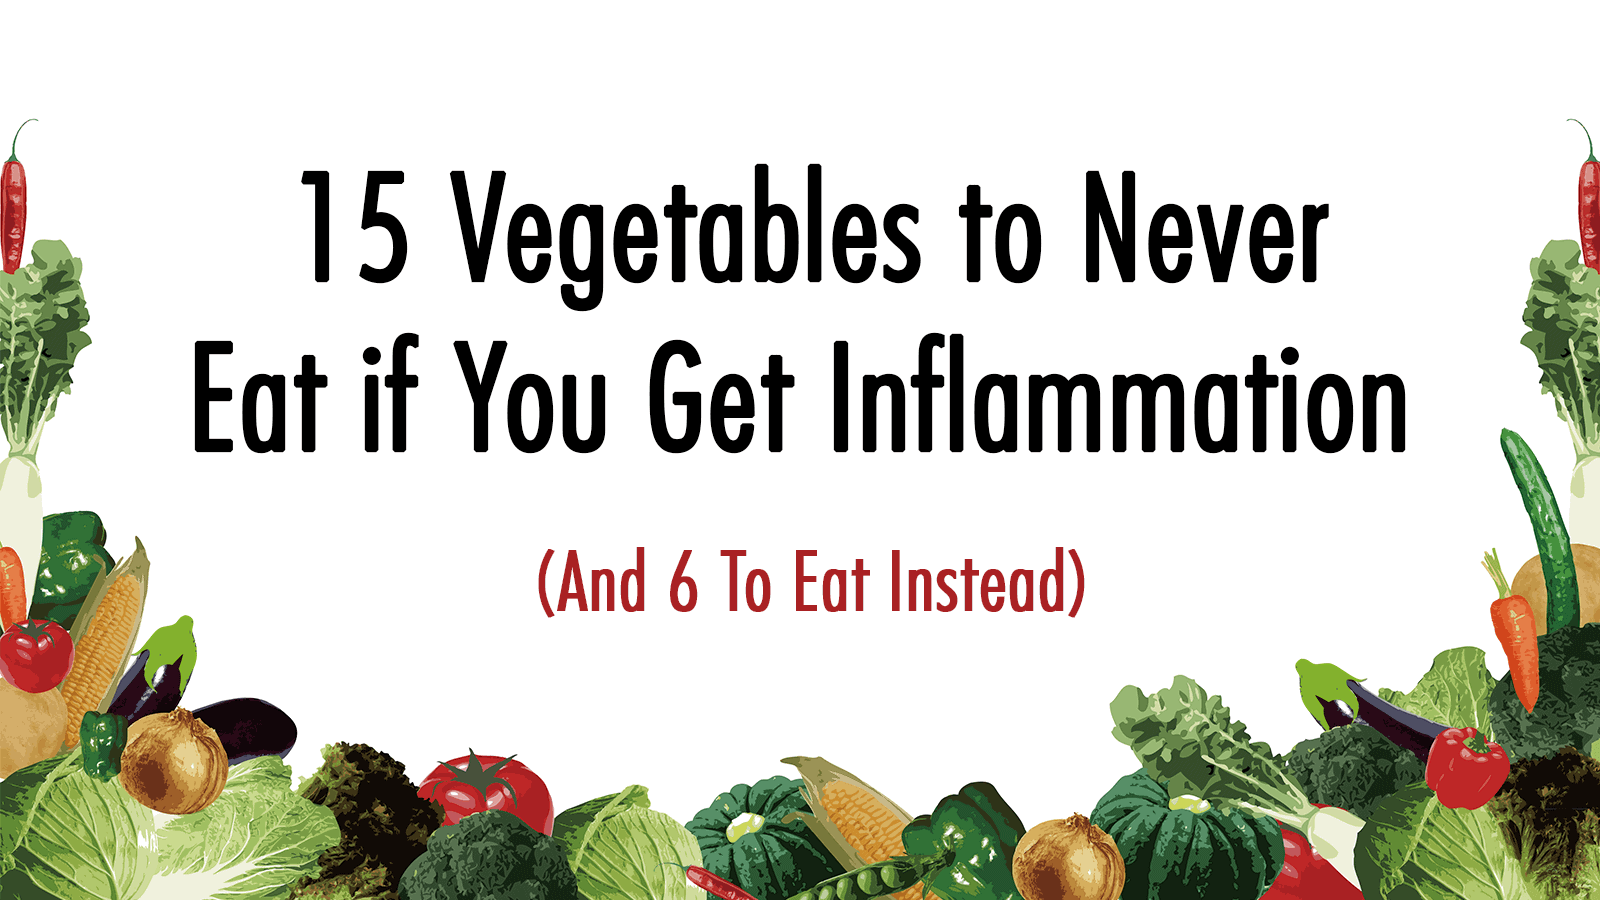 15 Vegetables to Never Eat if You Get Inflammation (And 6 To Eat Instead)